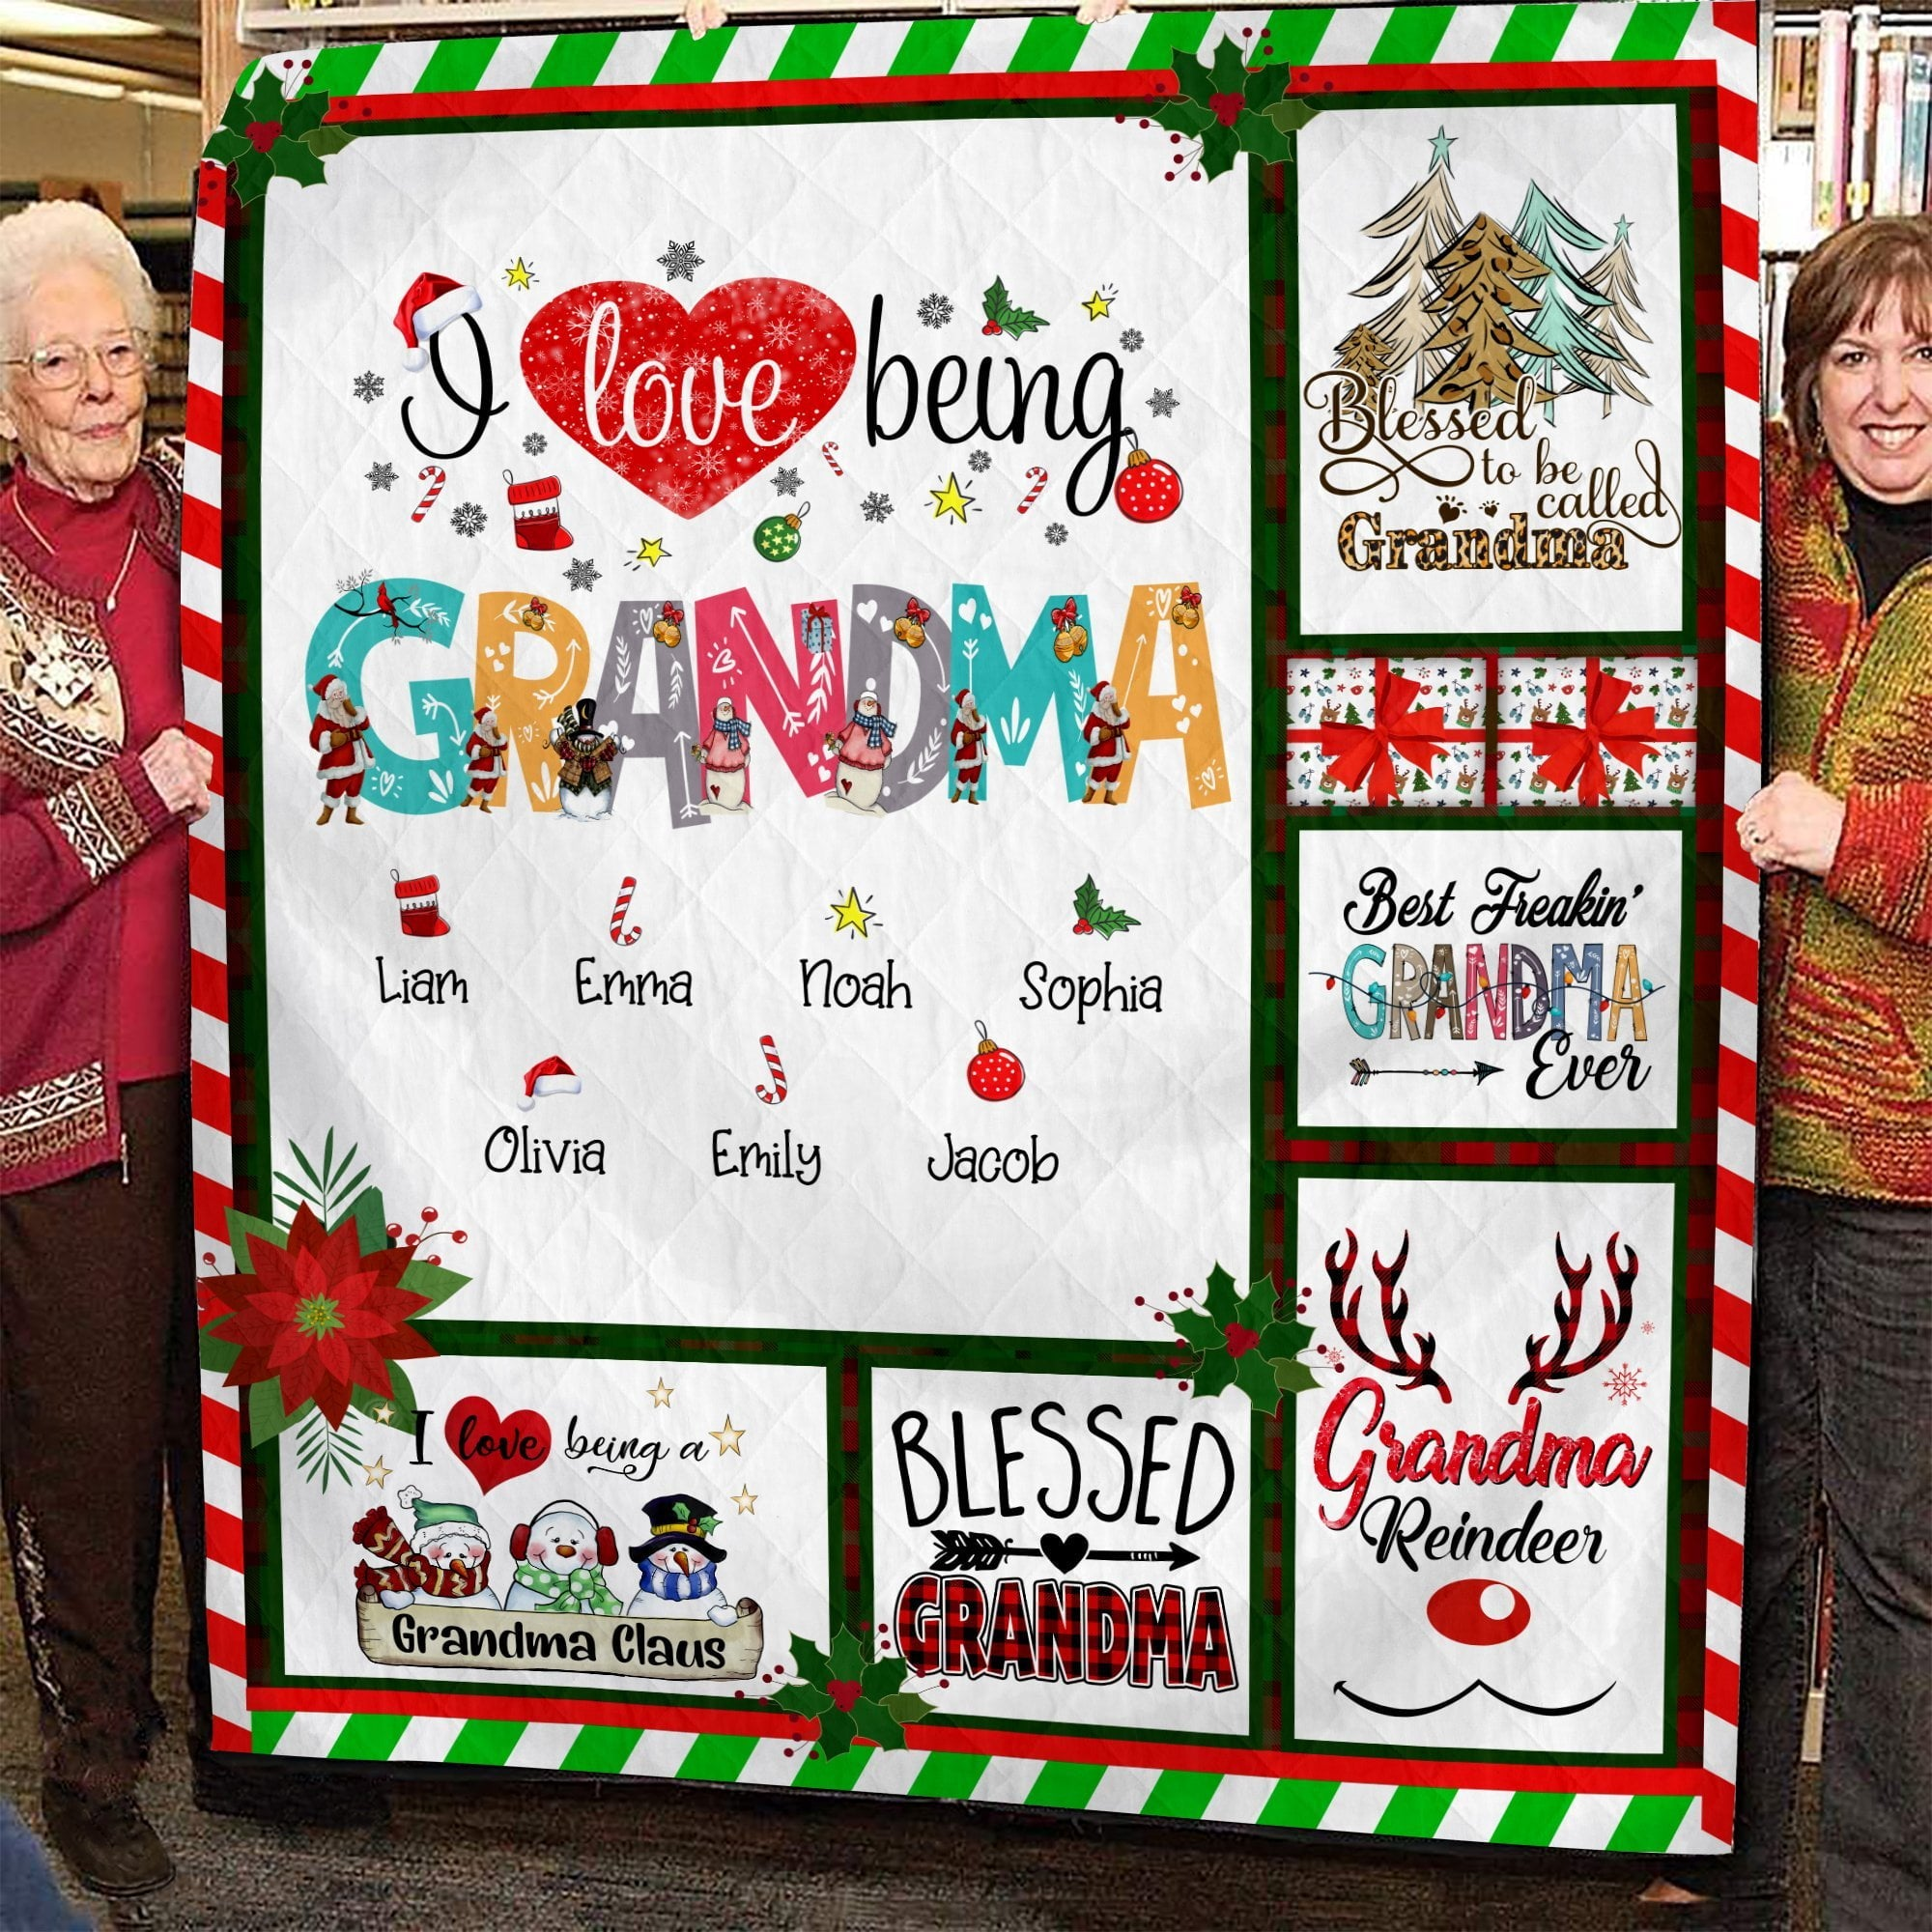 I Love Being Grandma Blanket | Family Personalized Blanket